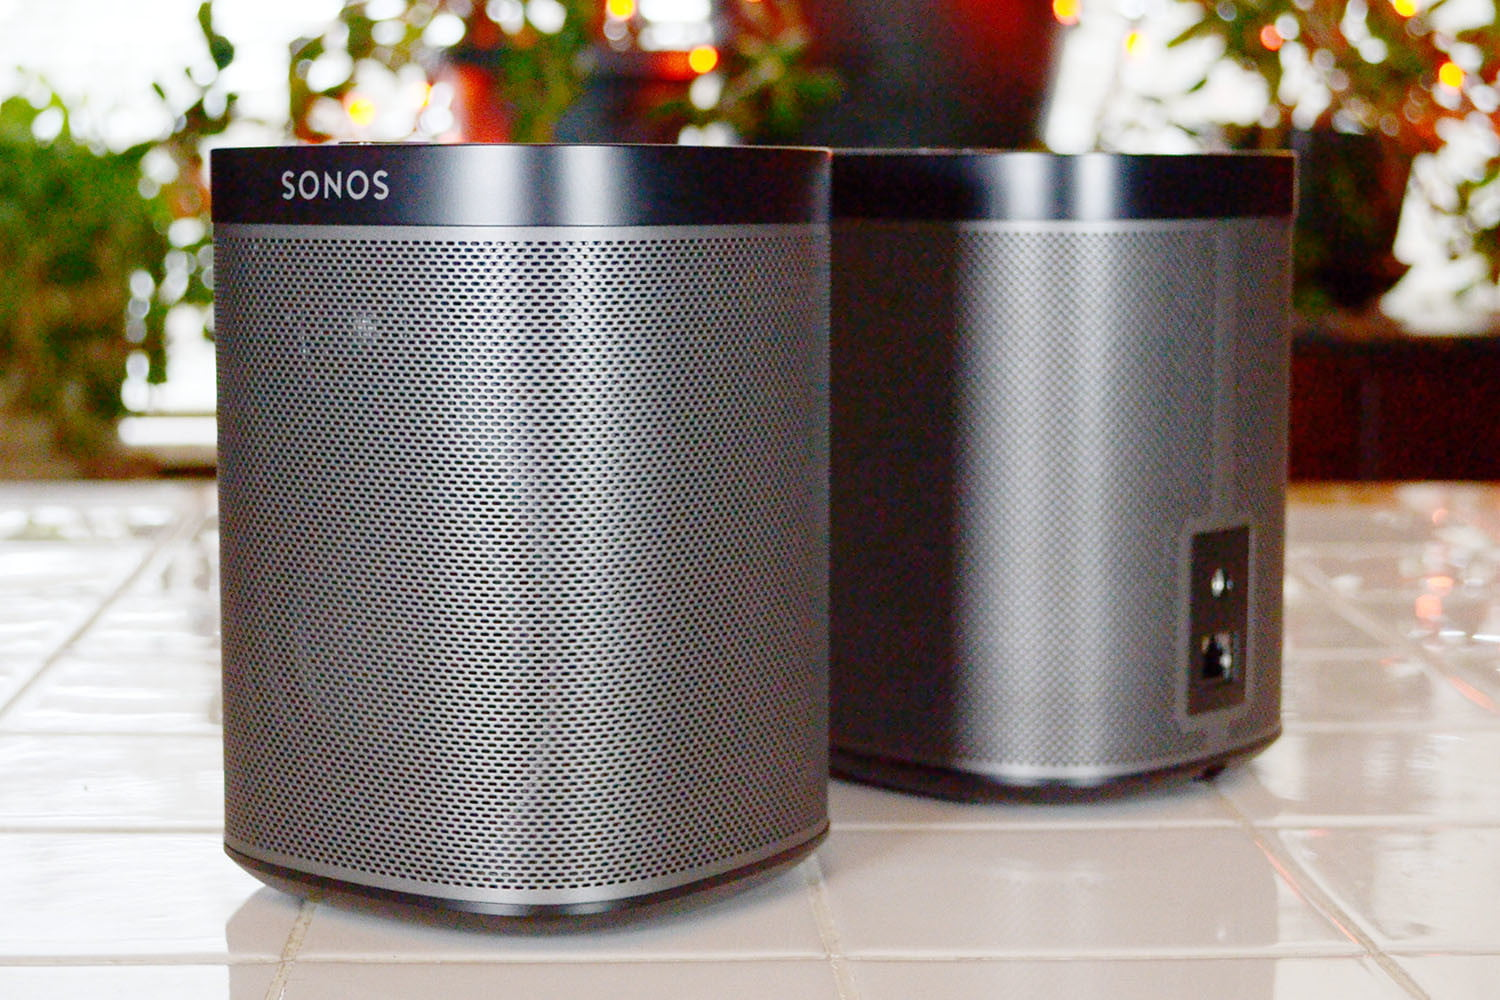 Save up to $100 on Sonos soundbars and subwoofers through Cyber Monday